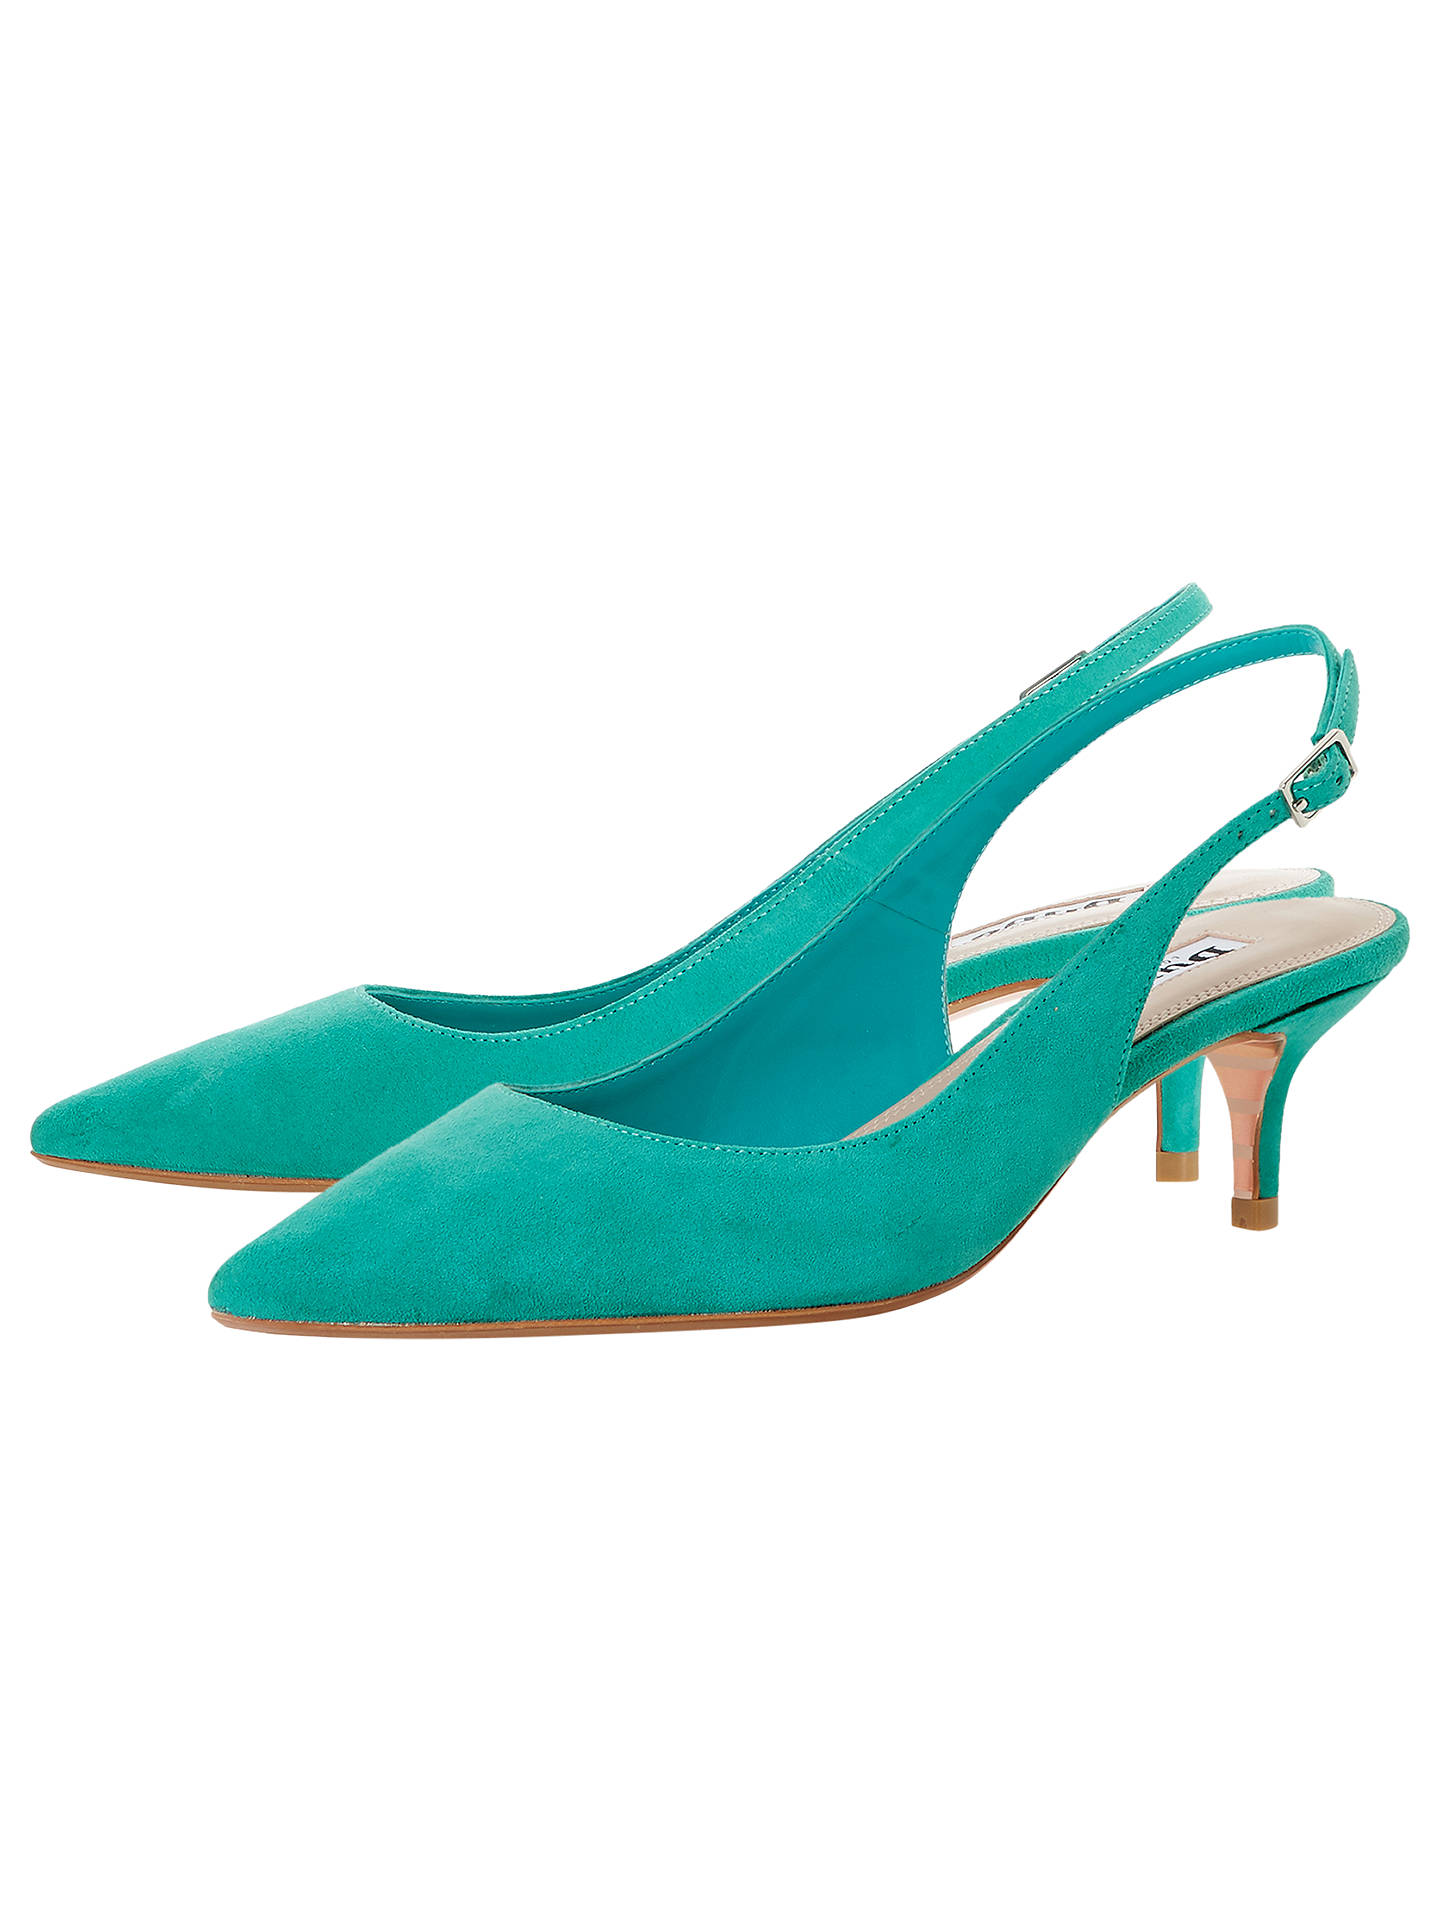 c272da4f293 Dune Casandra Kitten Heel Slingback Court Shoes at John Lewis   Partners